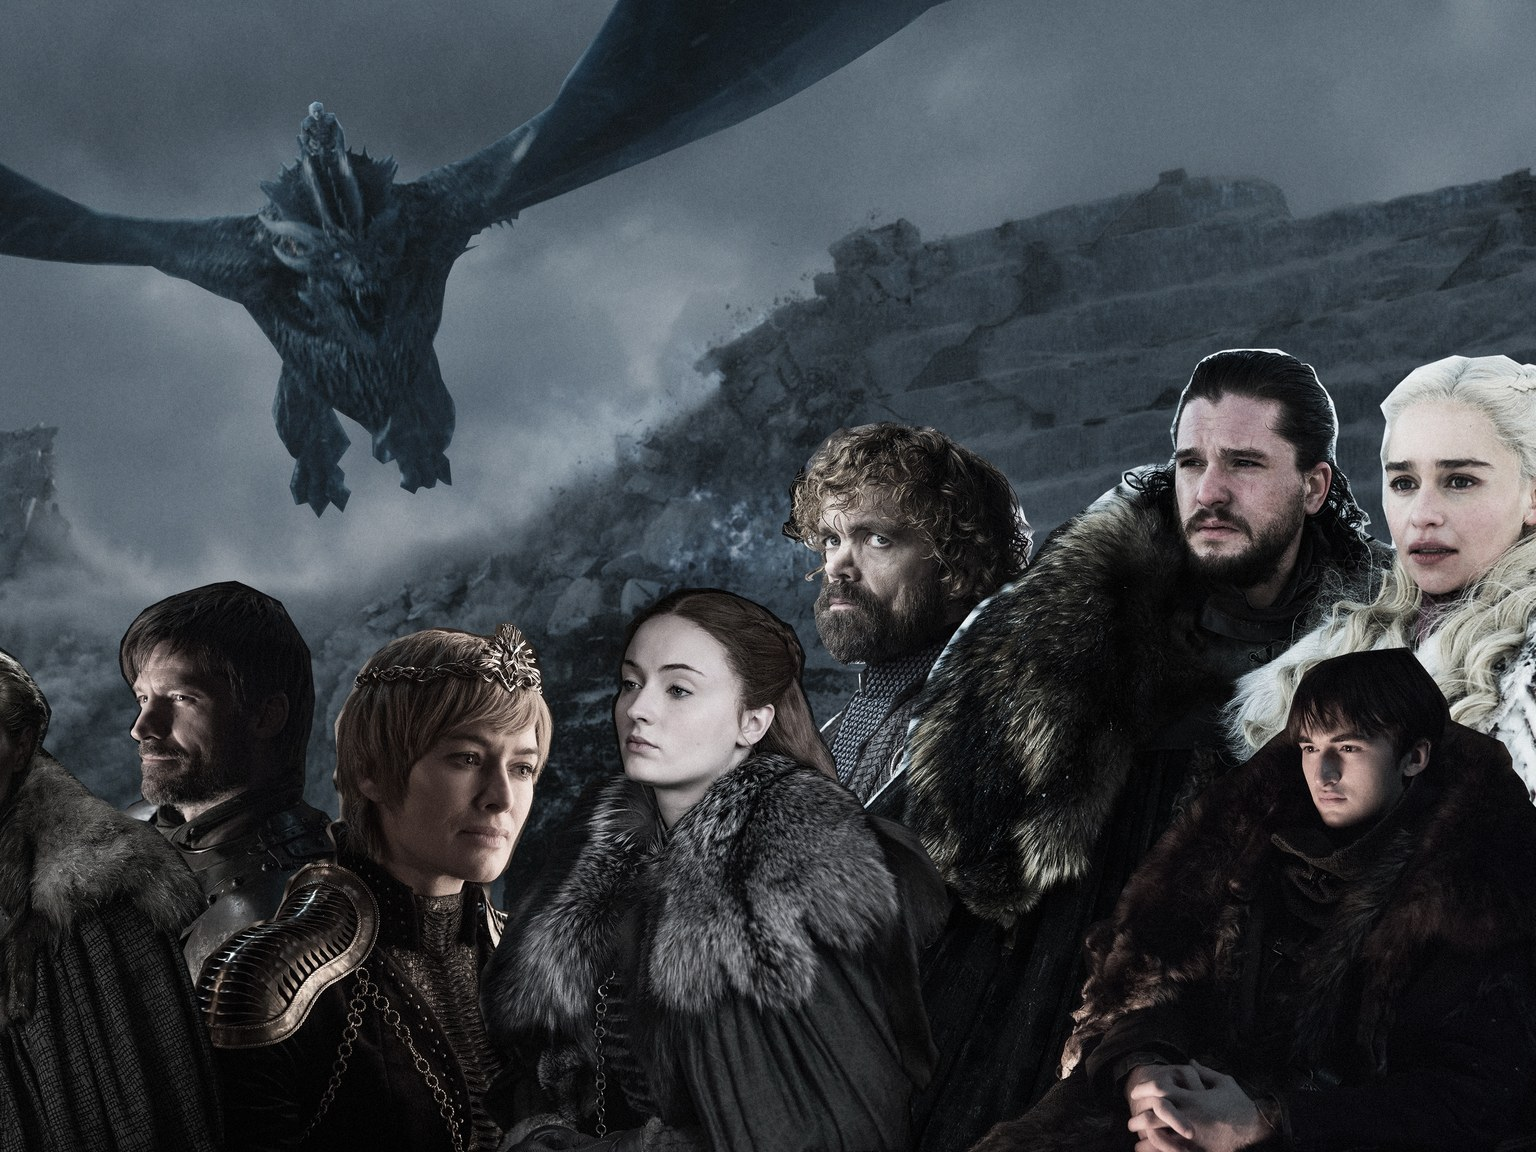 HBO Reacts on Petition For Remaking GOT Season 8